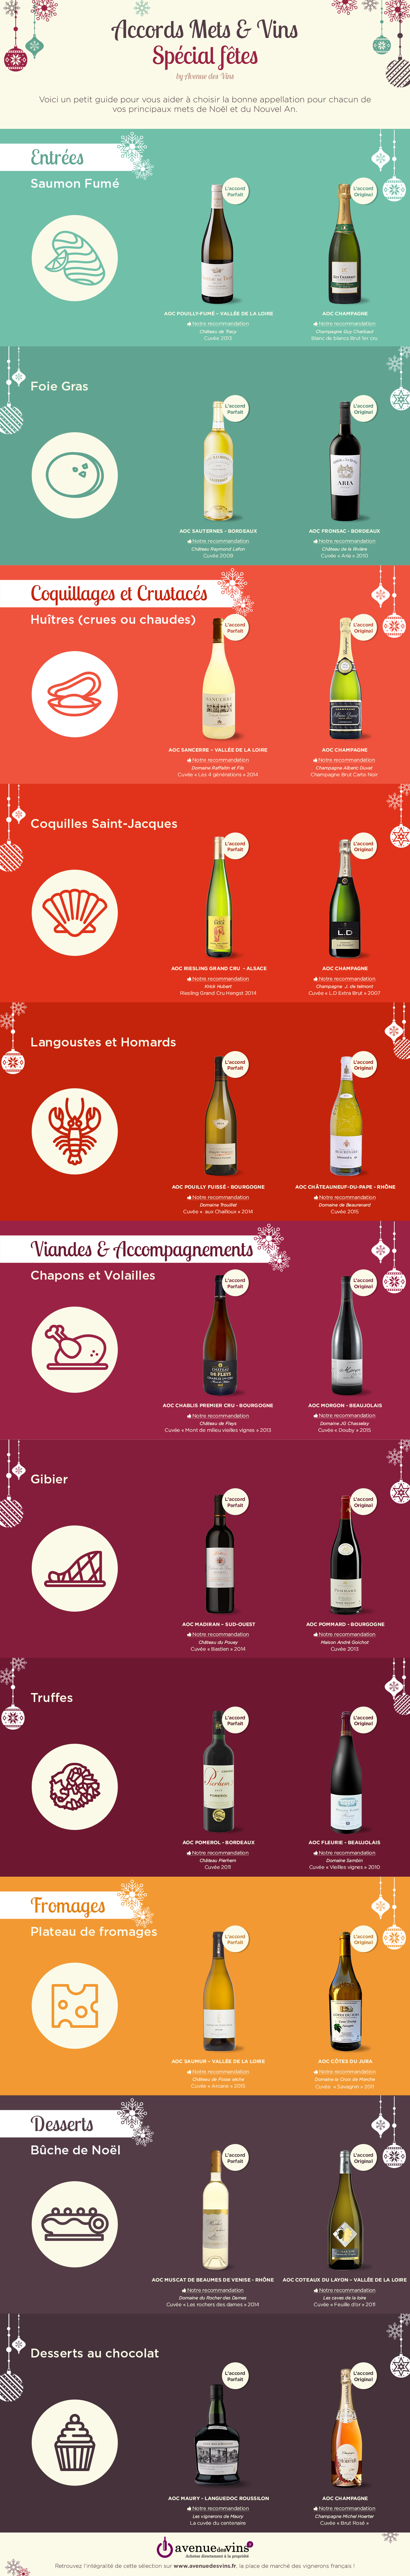 les-accords-mets-vins-special-fetesf-2